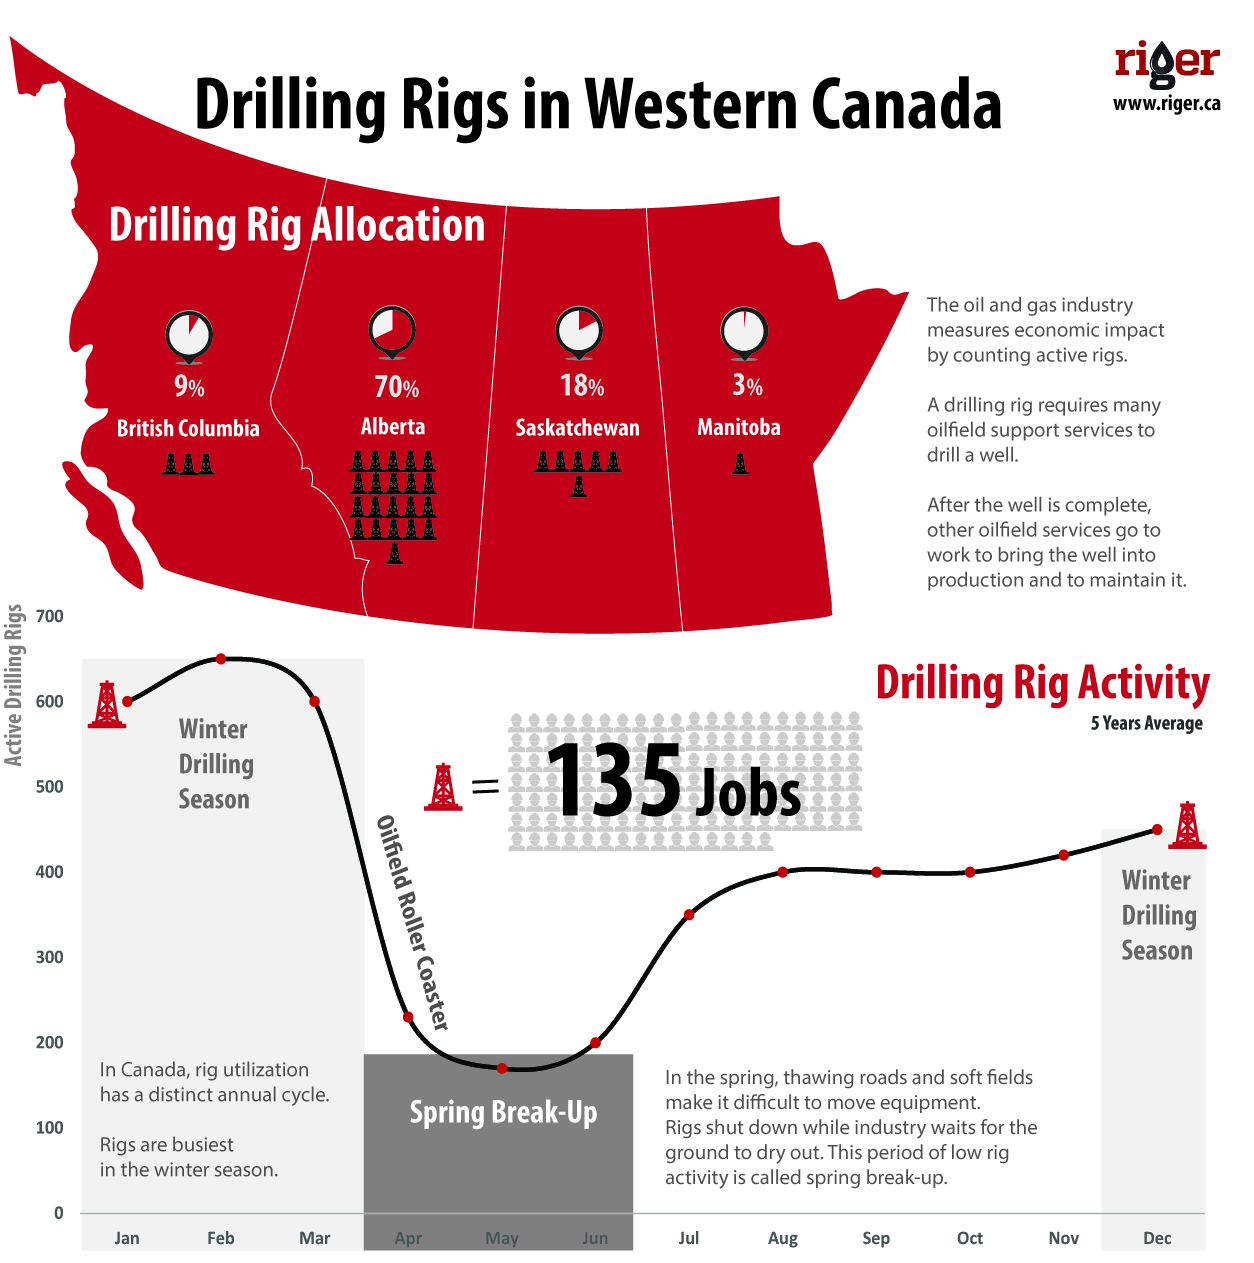 Drilling Rigs in Western Canada - Infographics by riger.ca